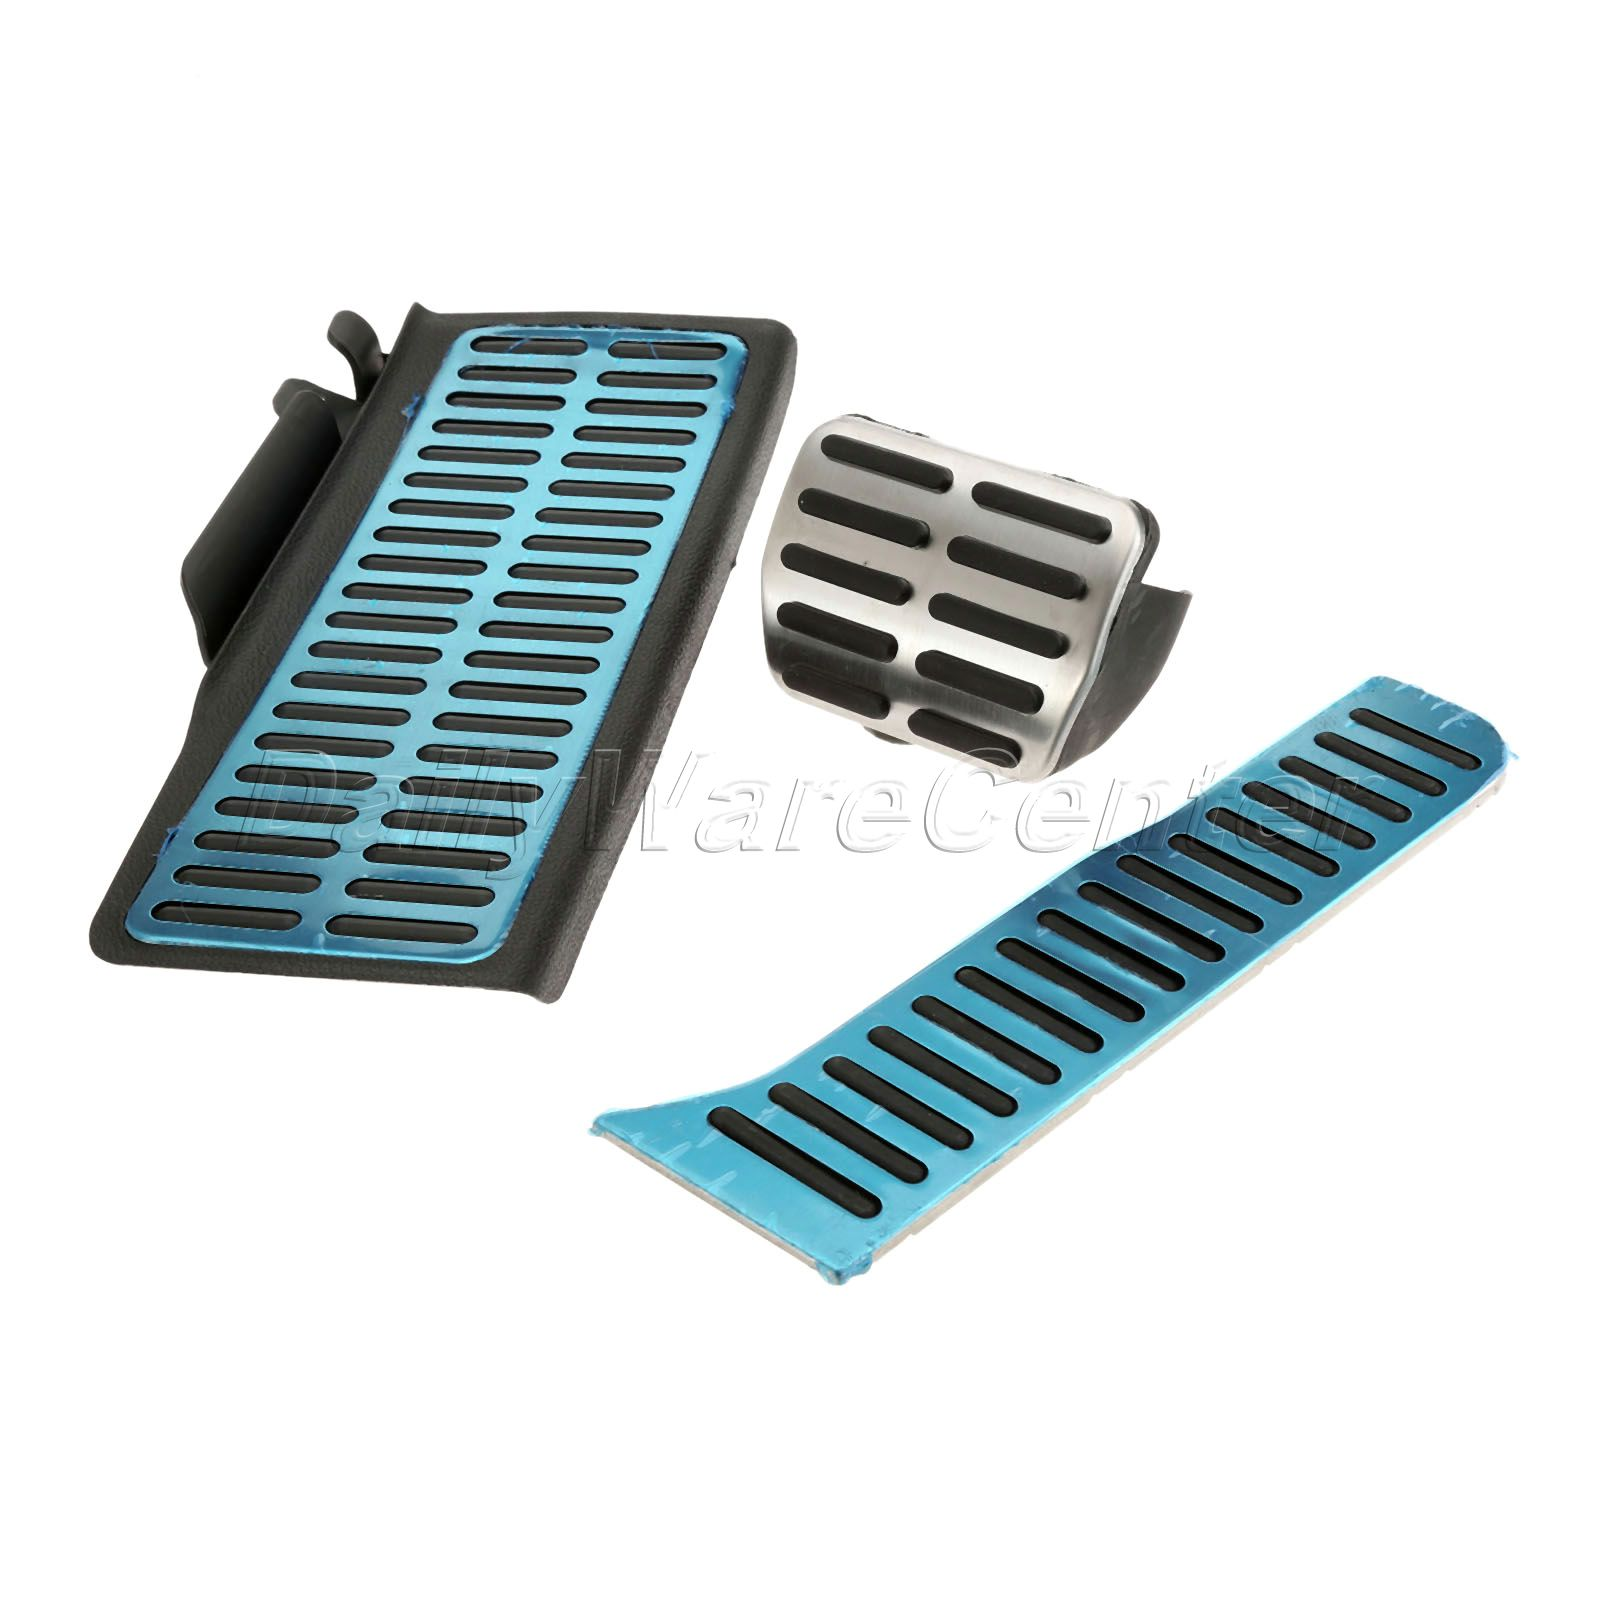 Car Styling Stainless Steel Footrest Accelerator Gas Brake Pedal Foot Rest Pad For VW Magotan CC